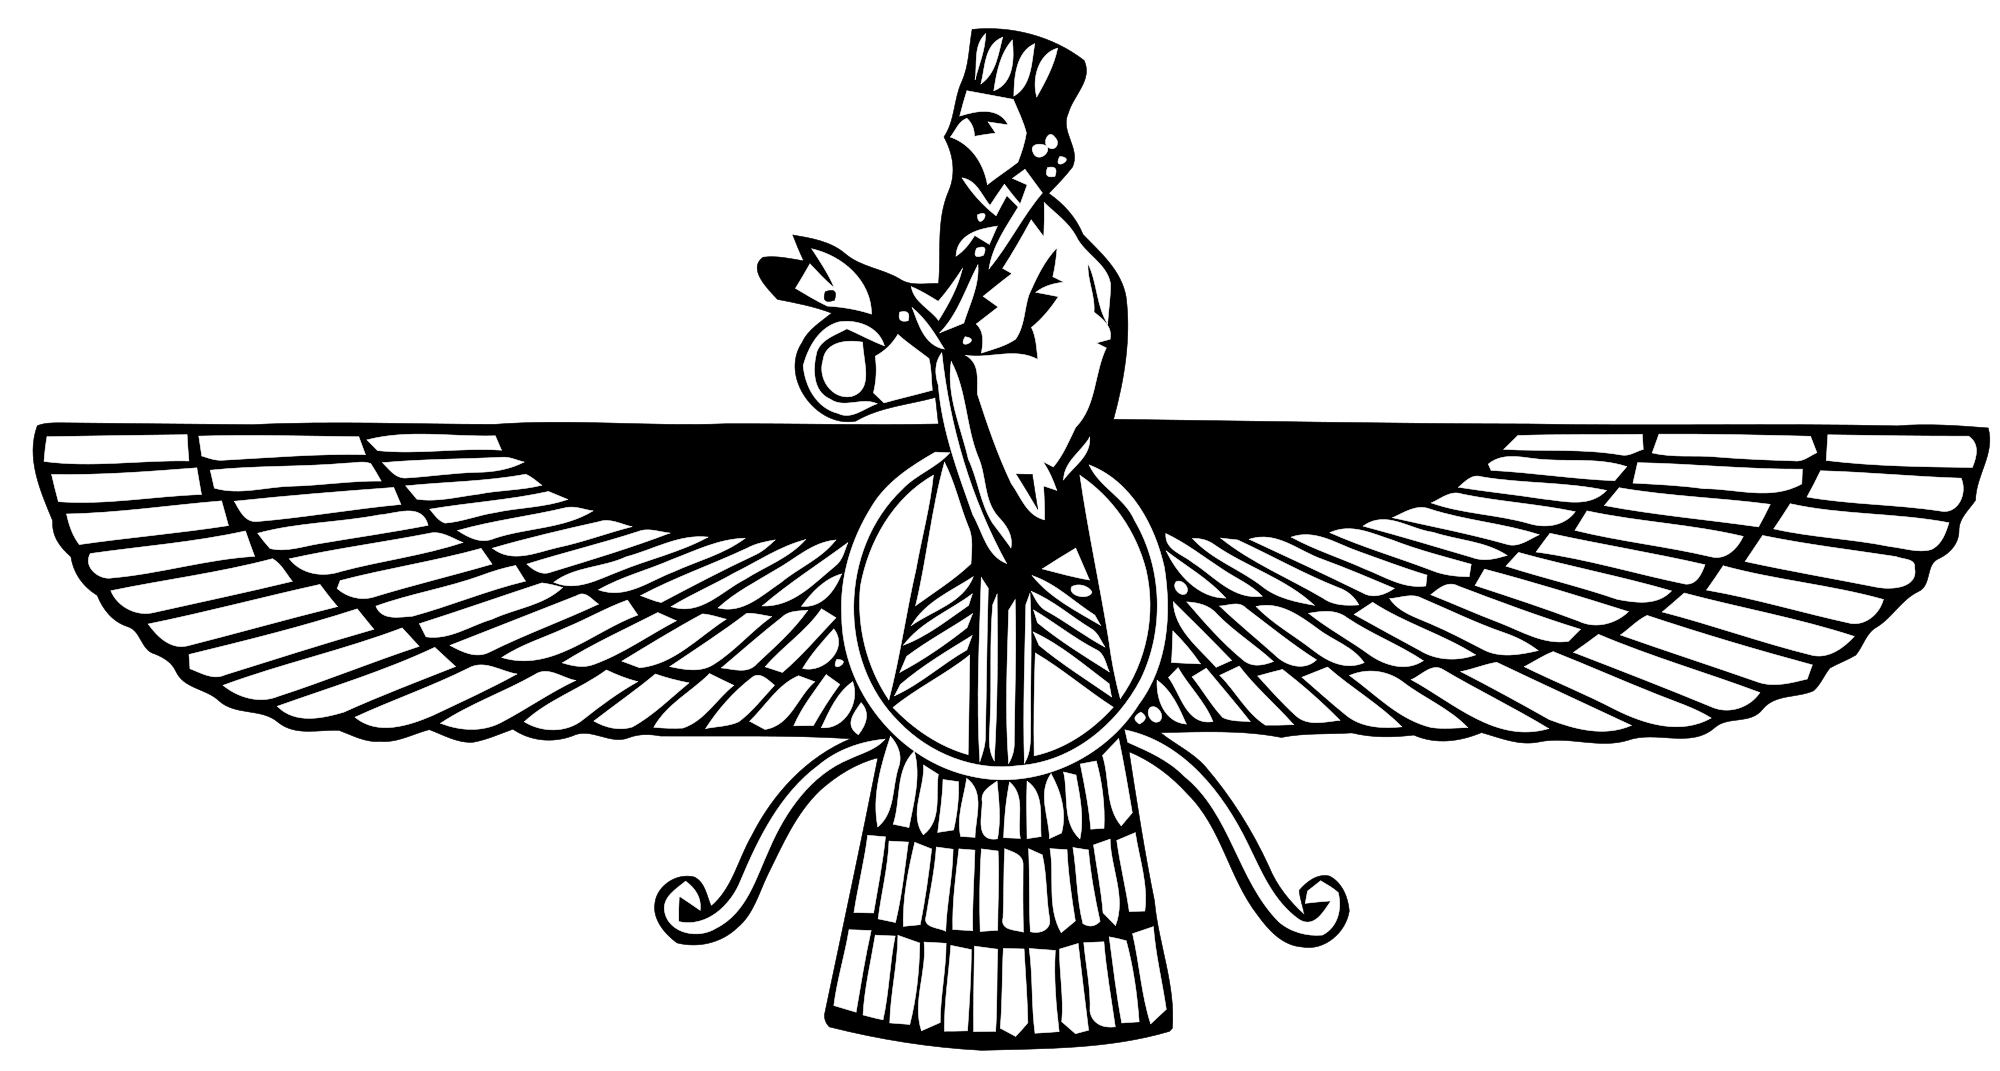 Faravahar (or Ferohar), one of the primary symbols of